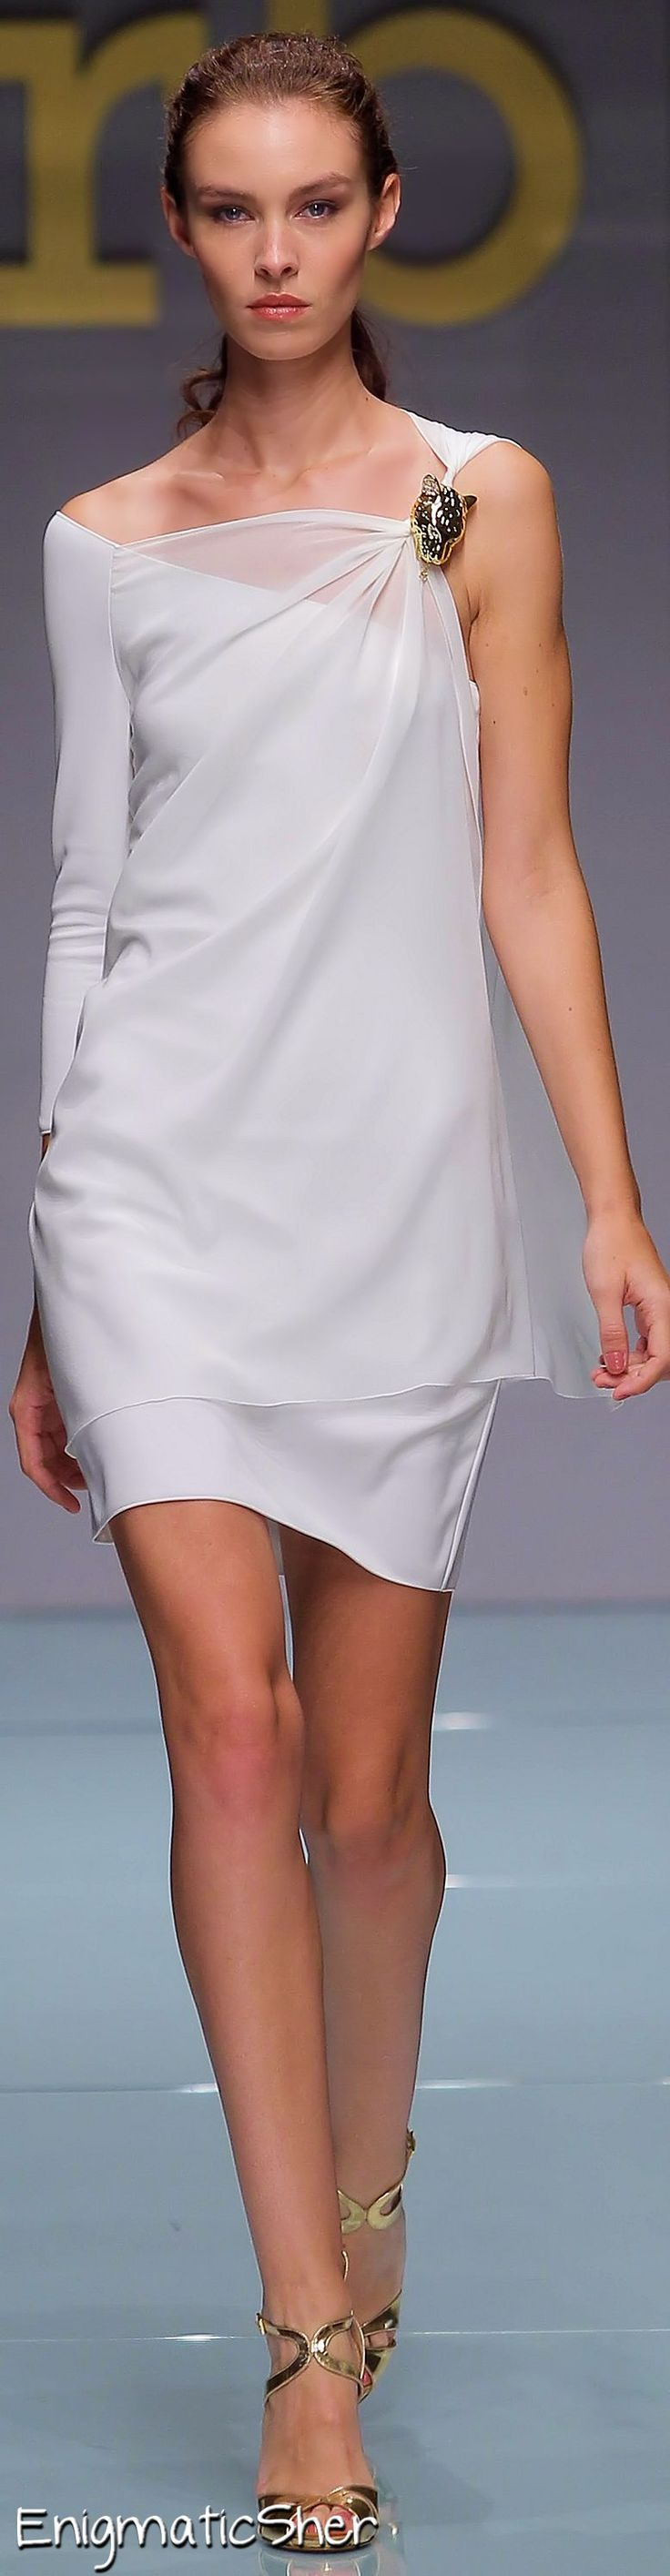 Rocco Barocco Collection ~ Mini Dress, Lilac, Spring 2015 - elegant - www.seacruisevilla.com